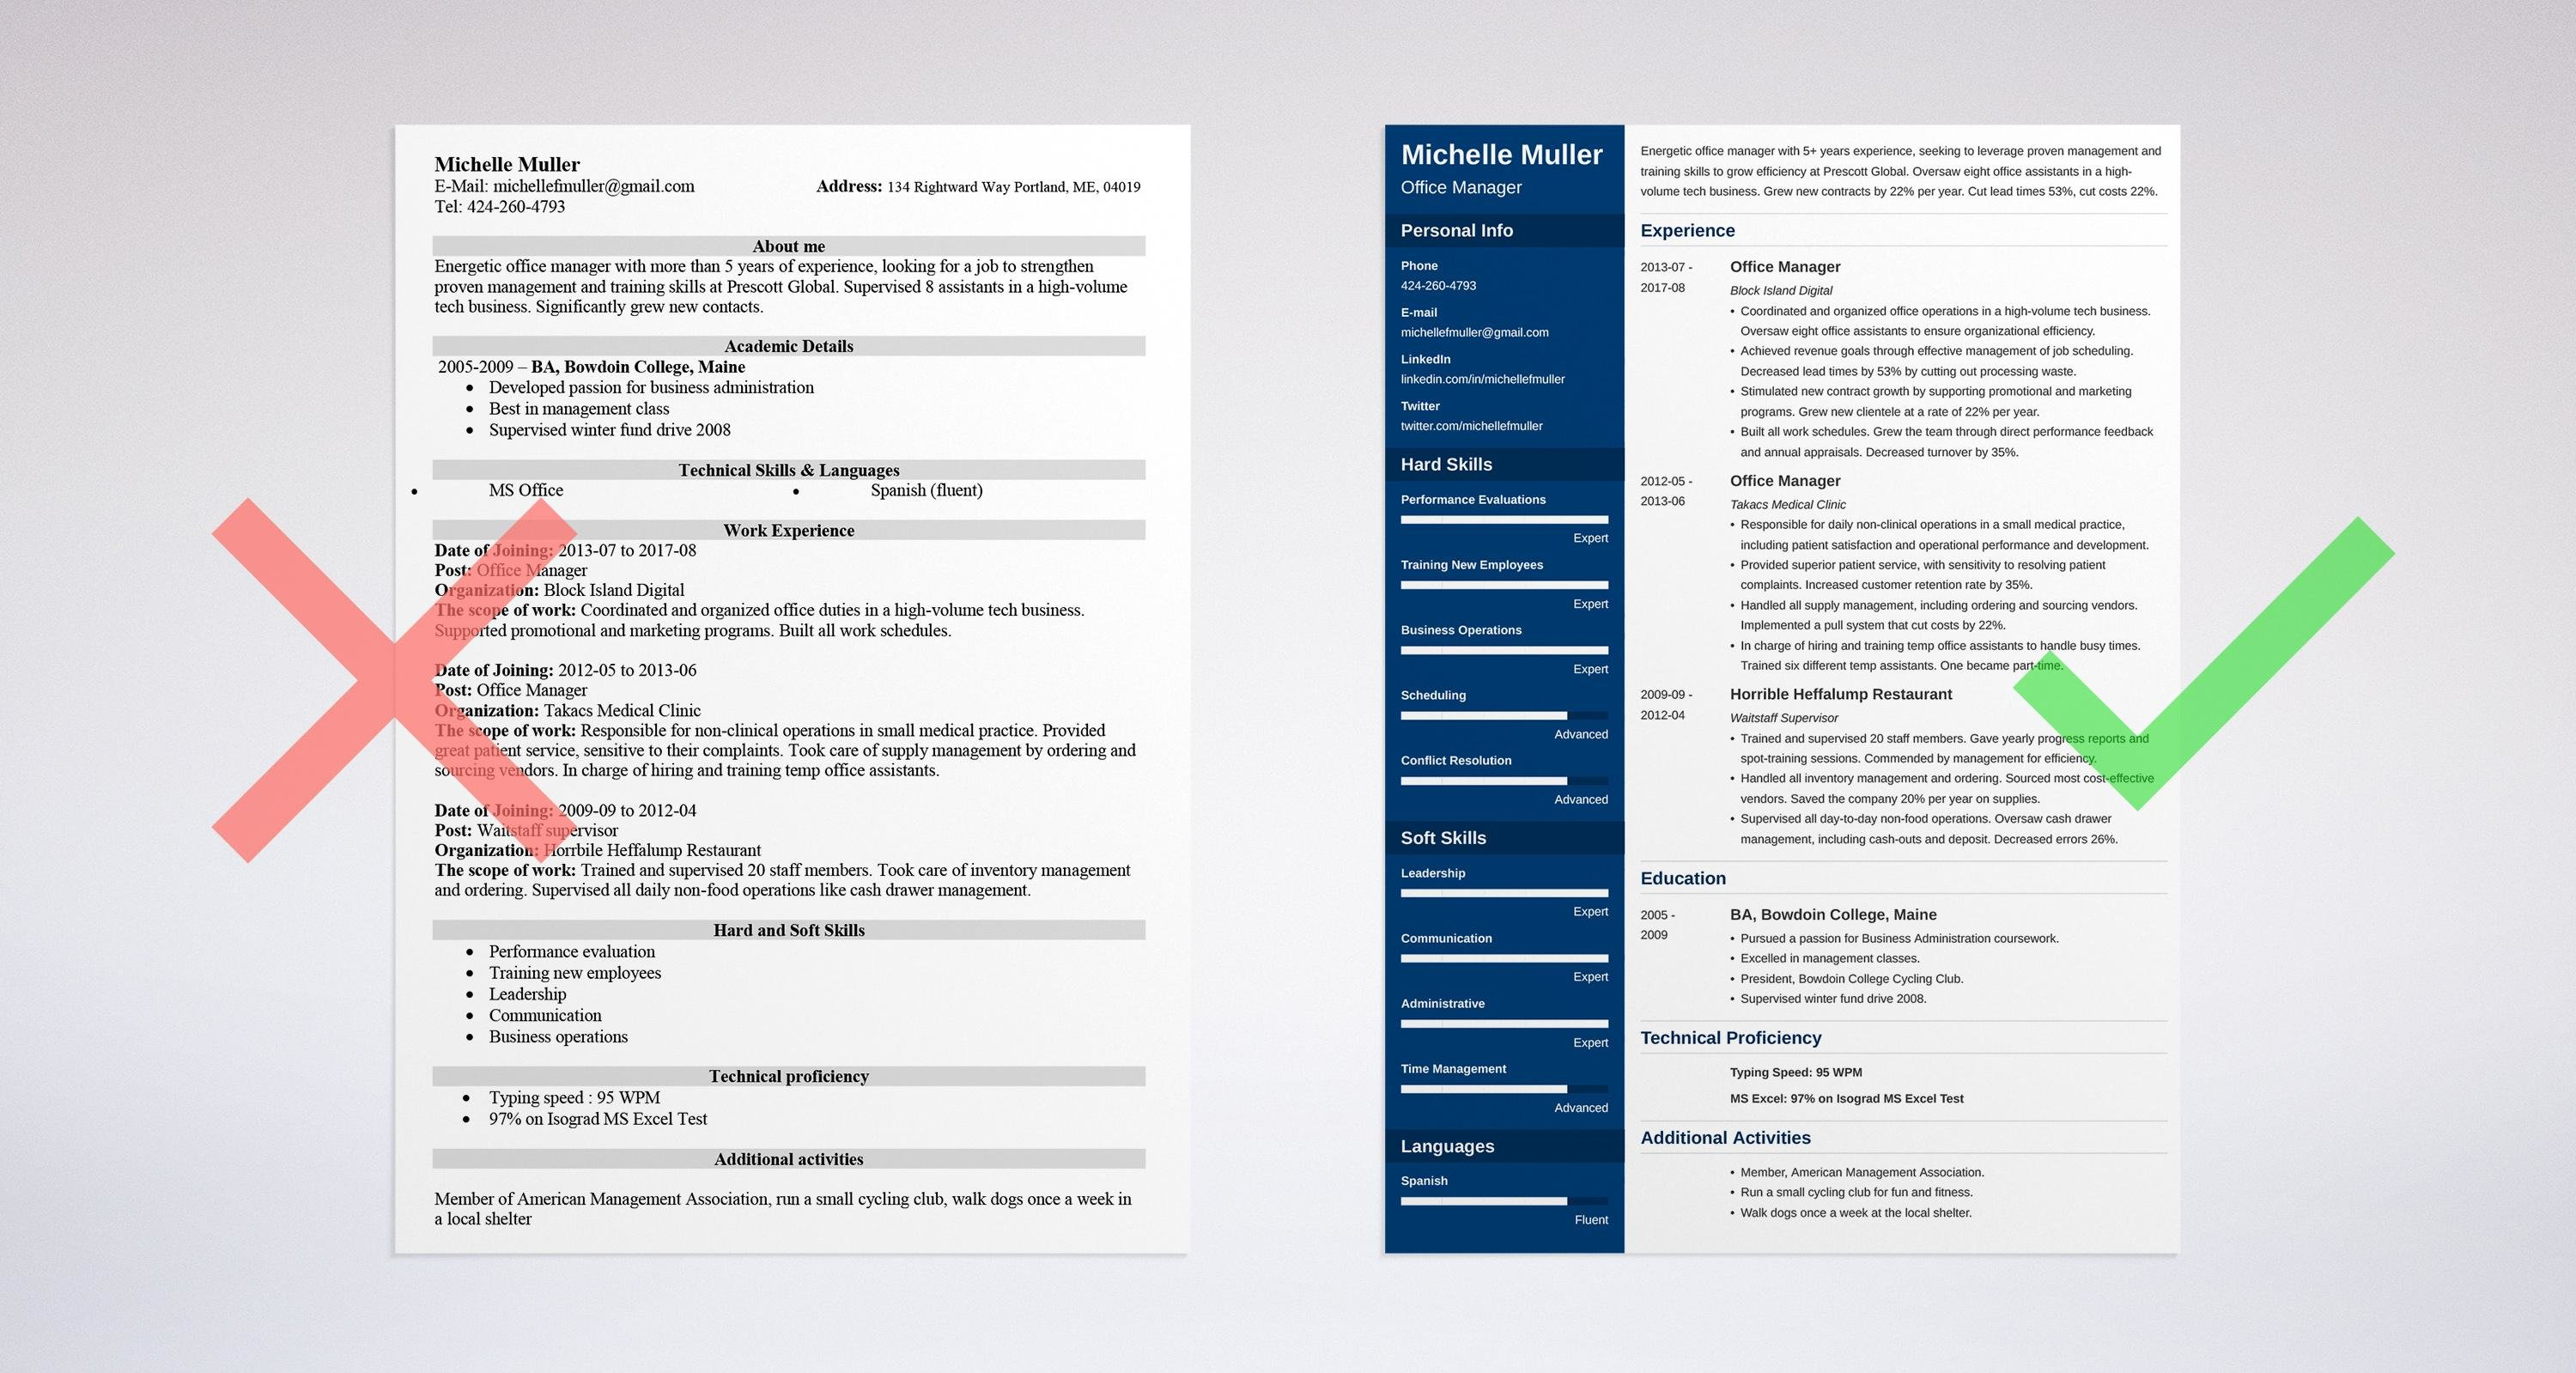 Delightful Office Manager Resume: Sample U0026 Complete Guide [+20 Examples]